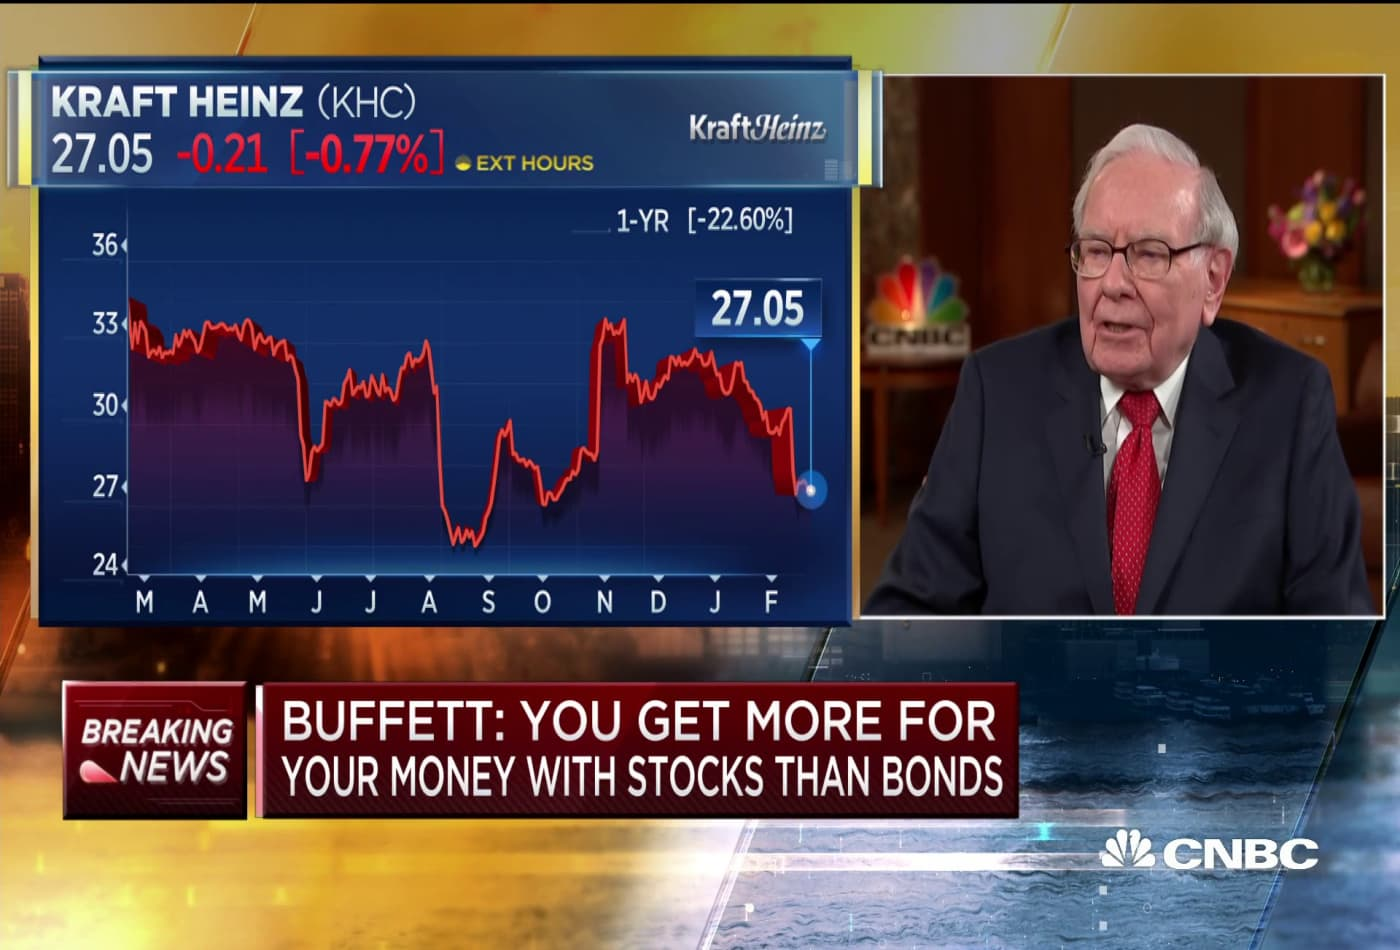 Warren Buffett: 'Kraft Heinz should pay down its debt'